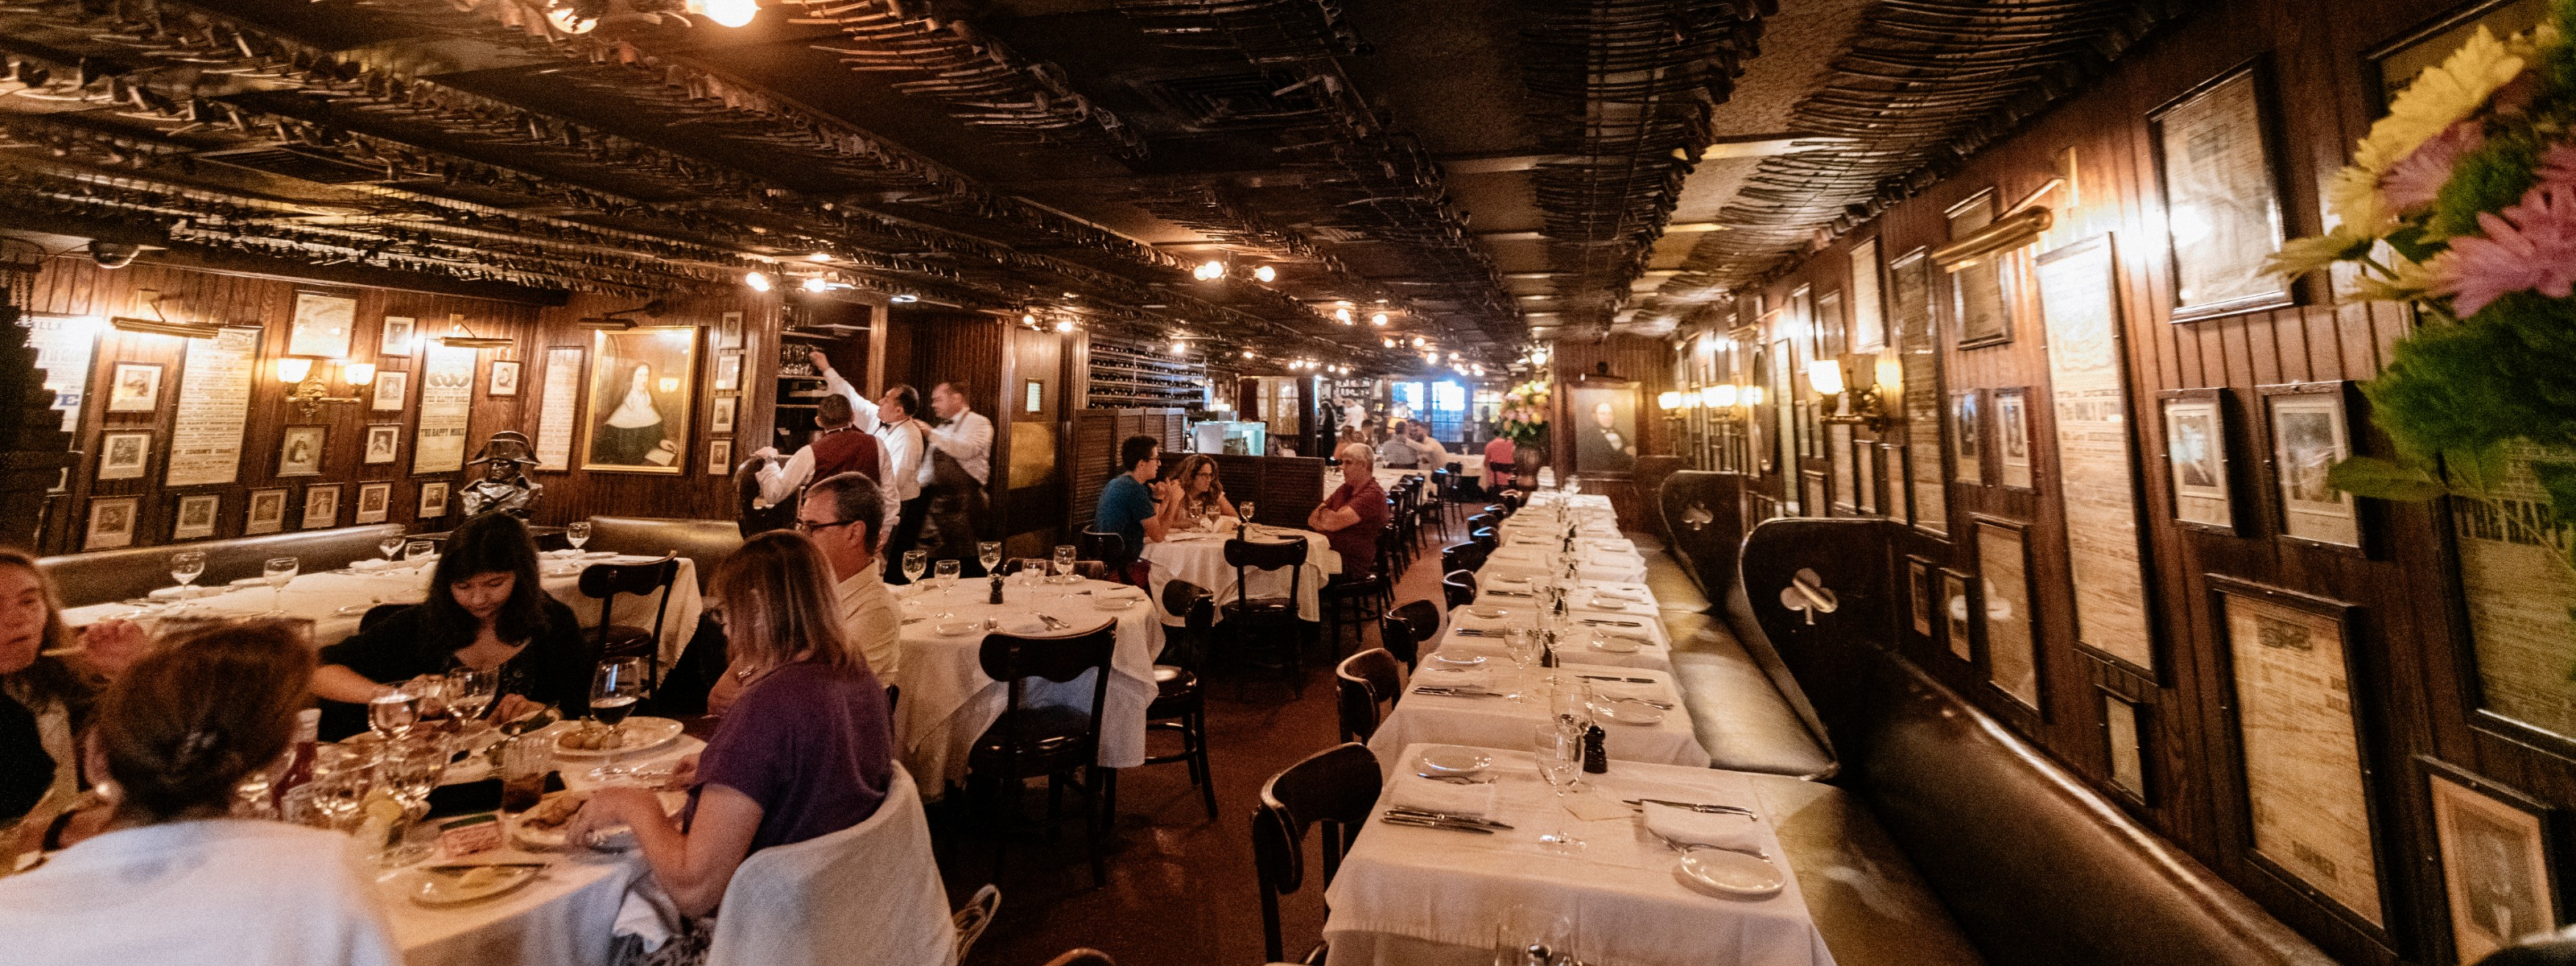 Keens Steakhouse Midtown New York The Infatuation